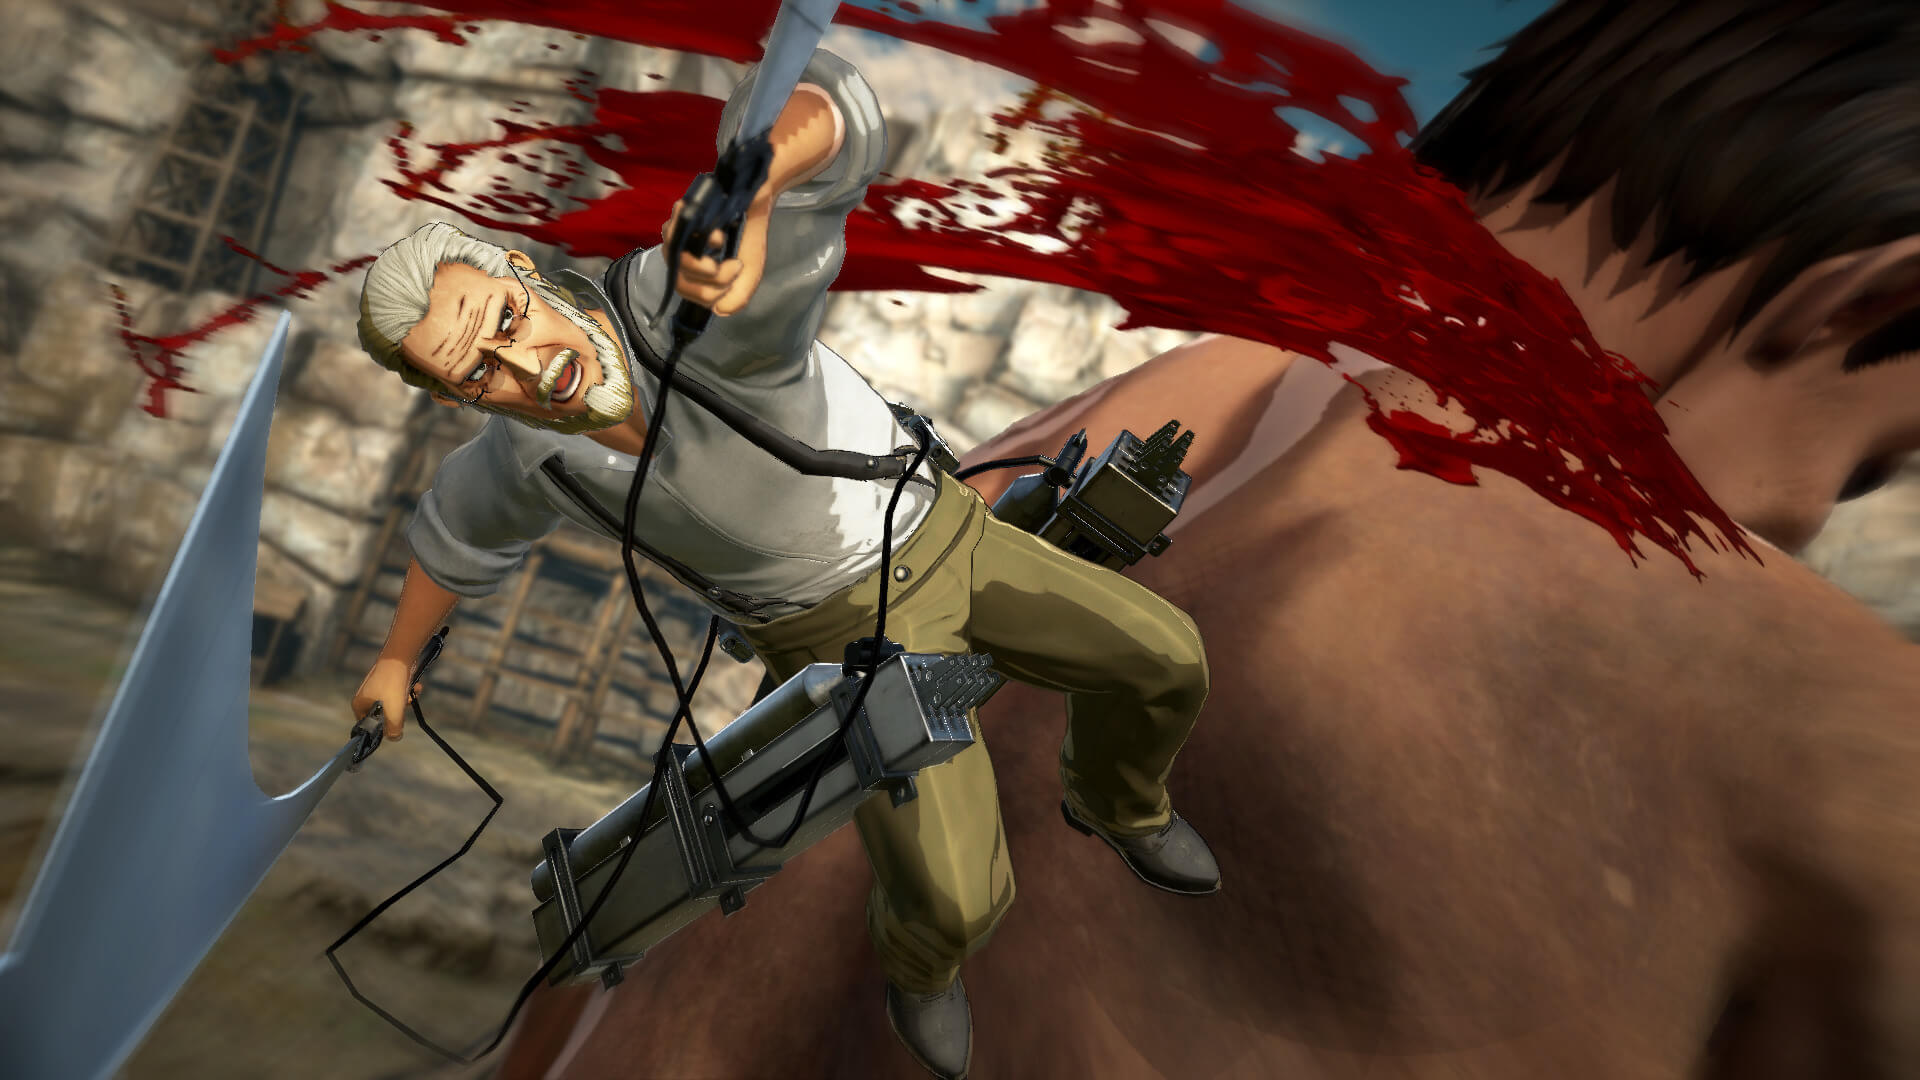 Attack on Titan 2 - Online multiplayer modes and features ...